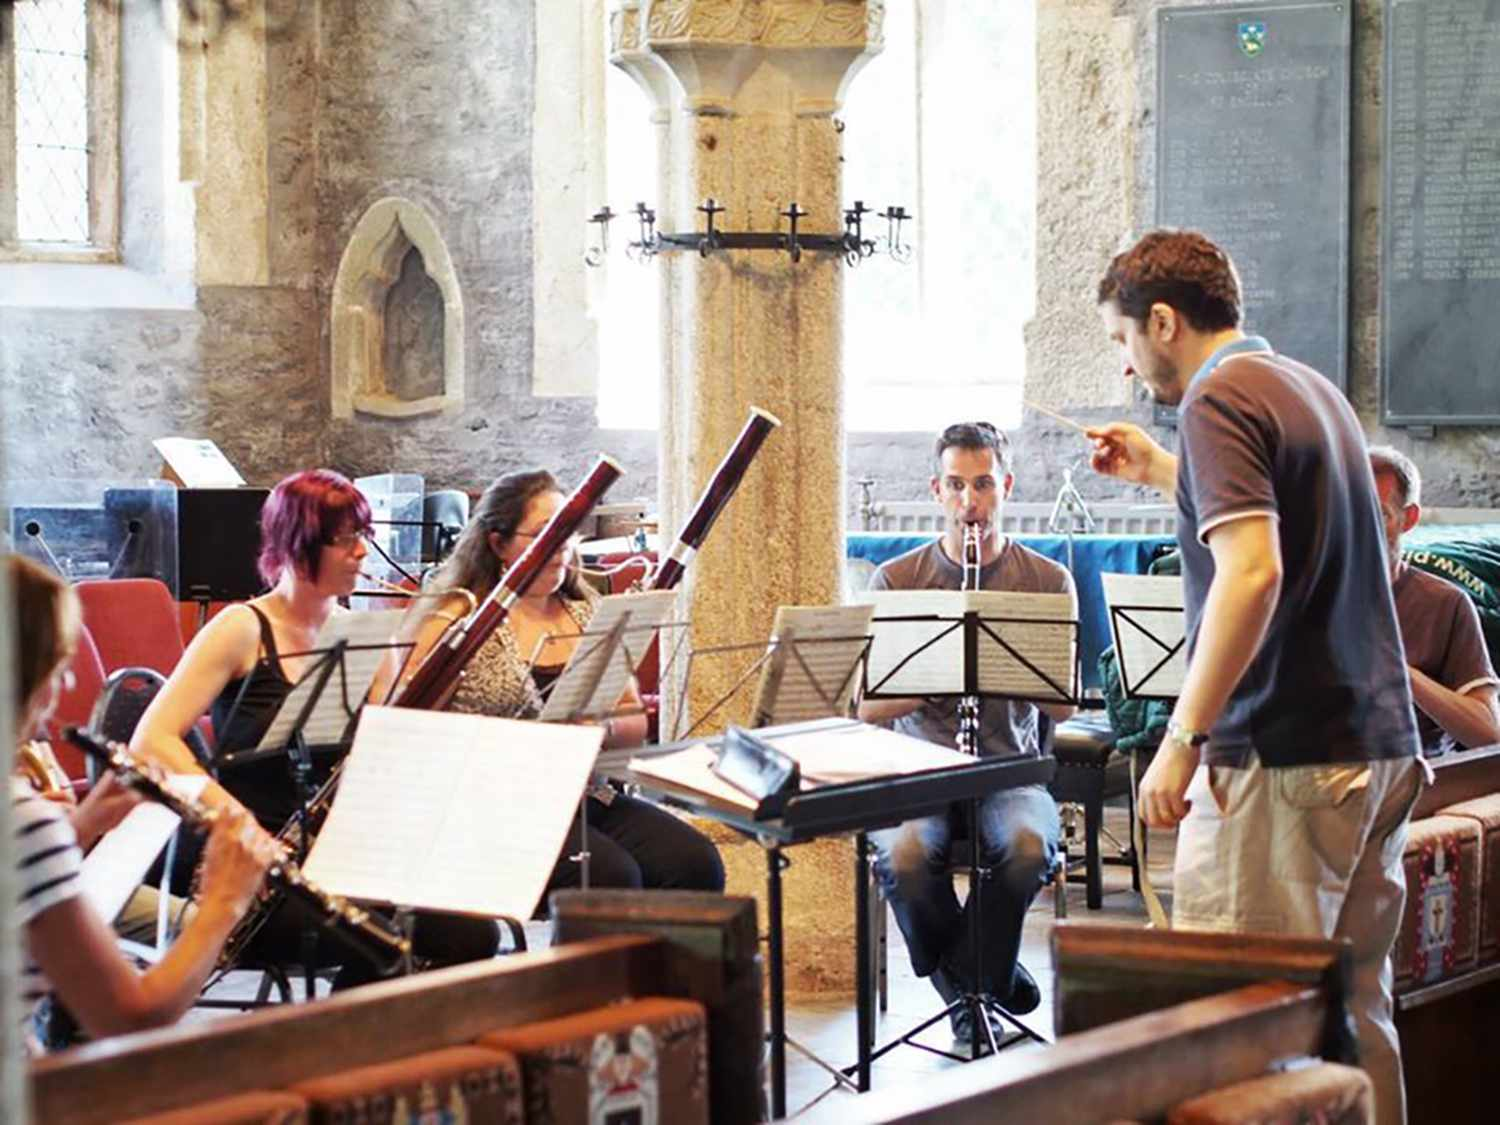 Rehearsals by members of St Endellion's orchestras